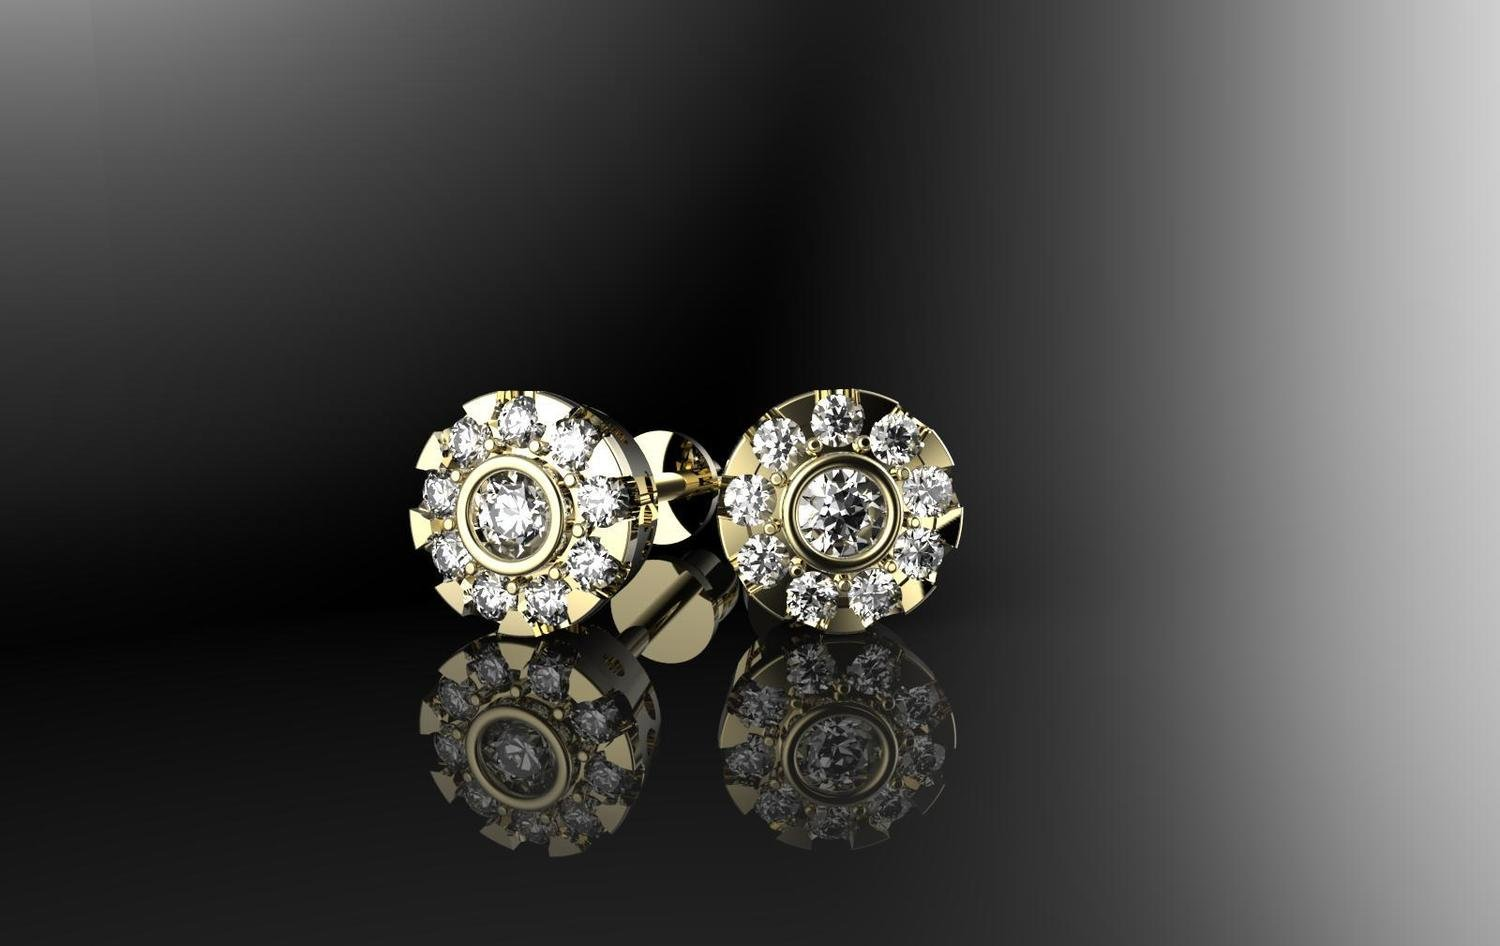 3D CAD file of stud earrings with stones